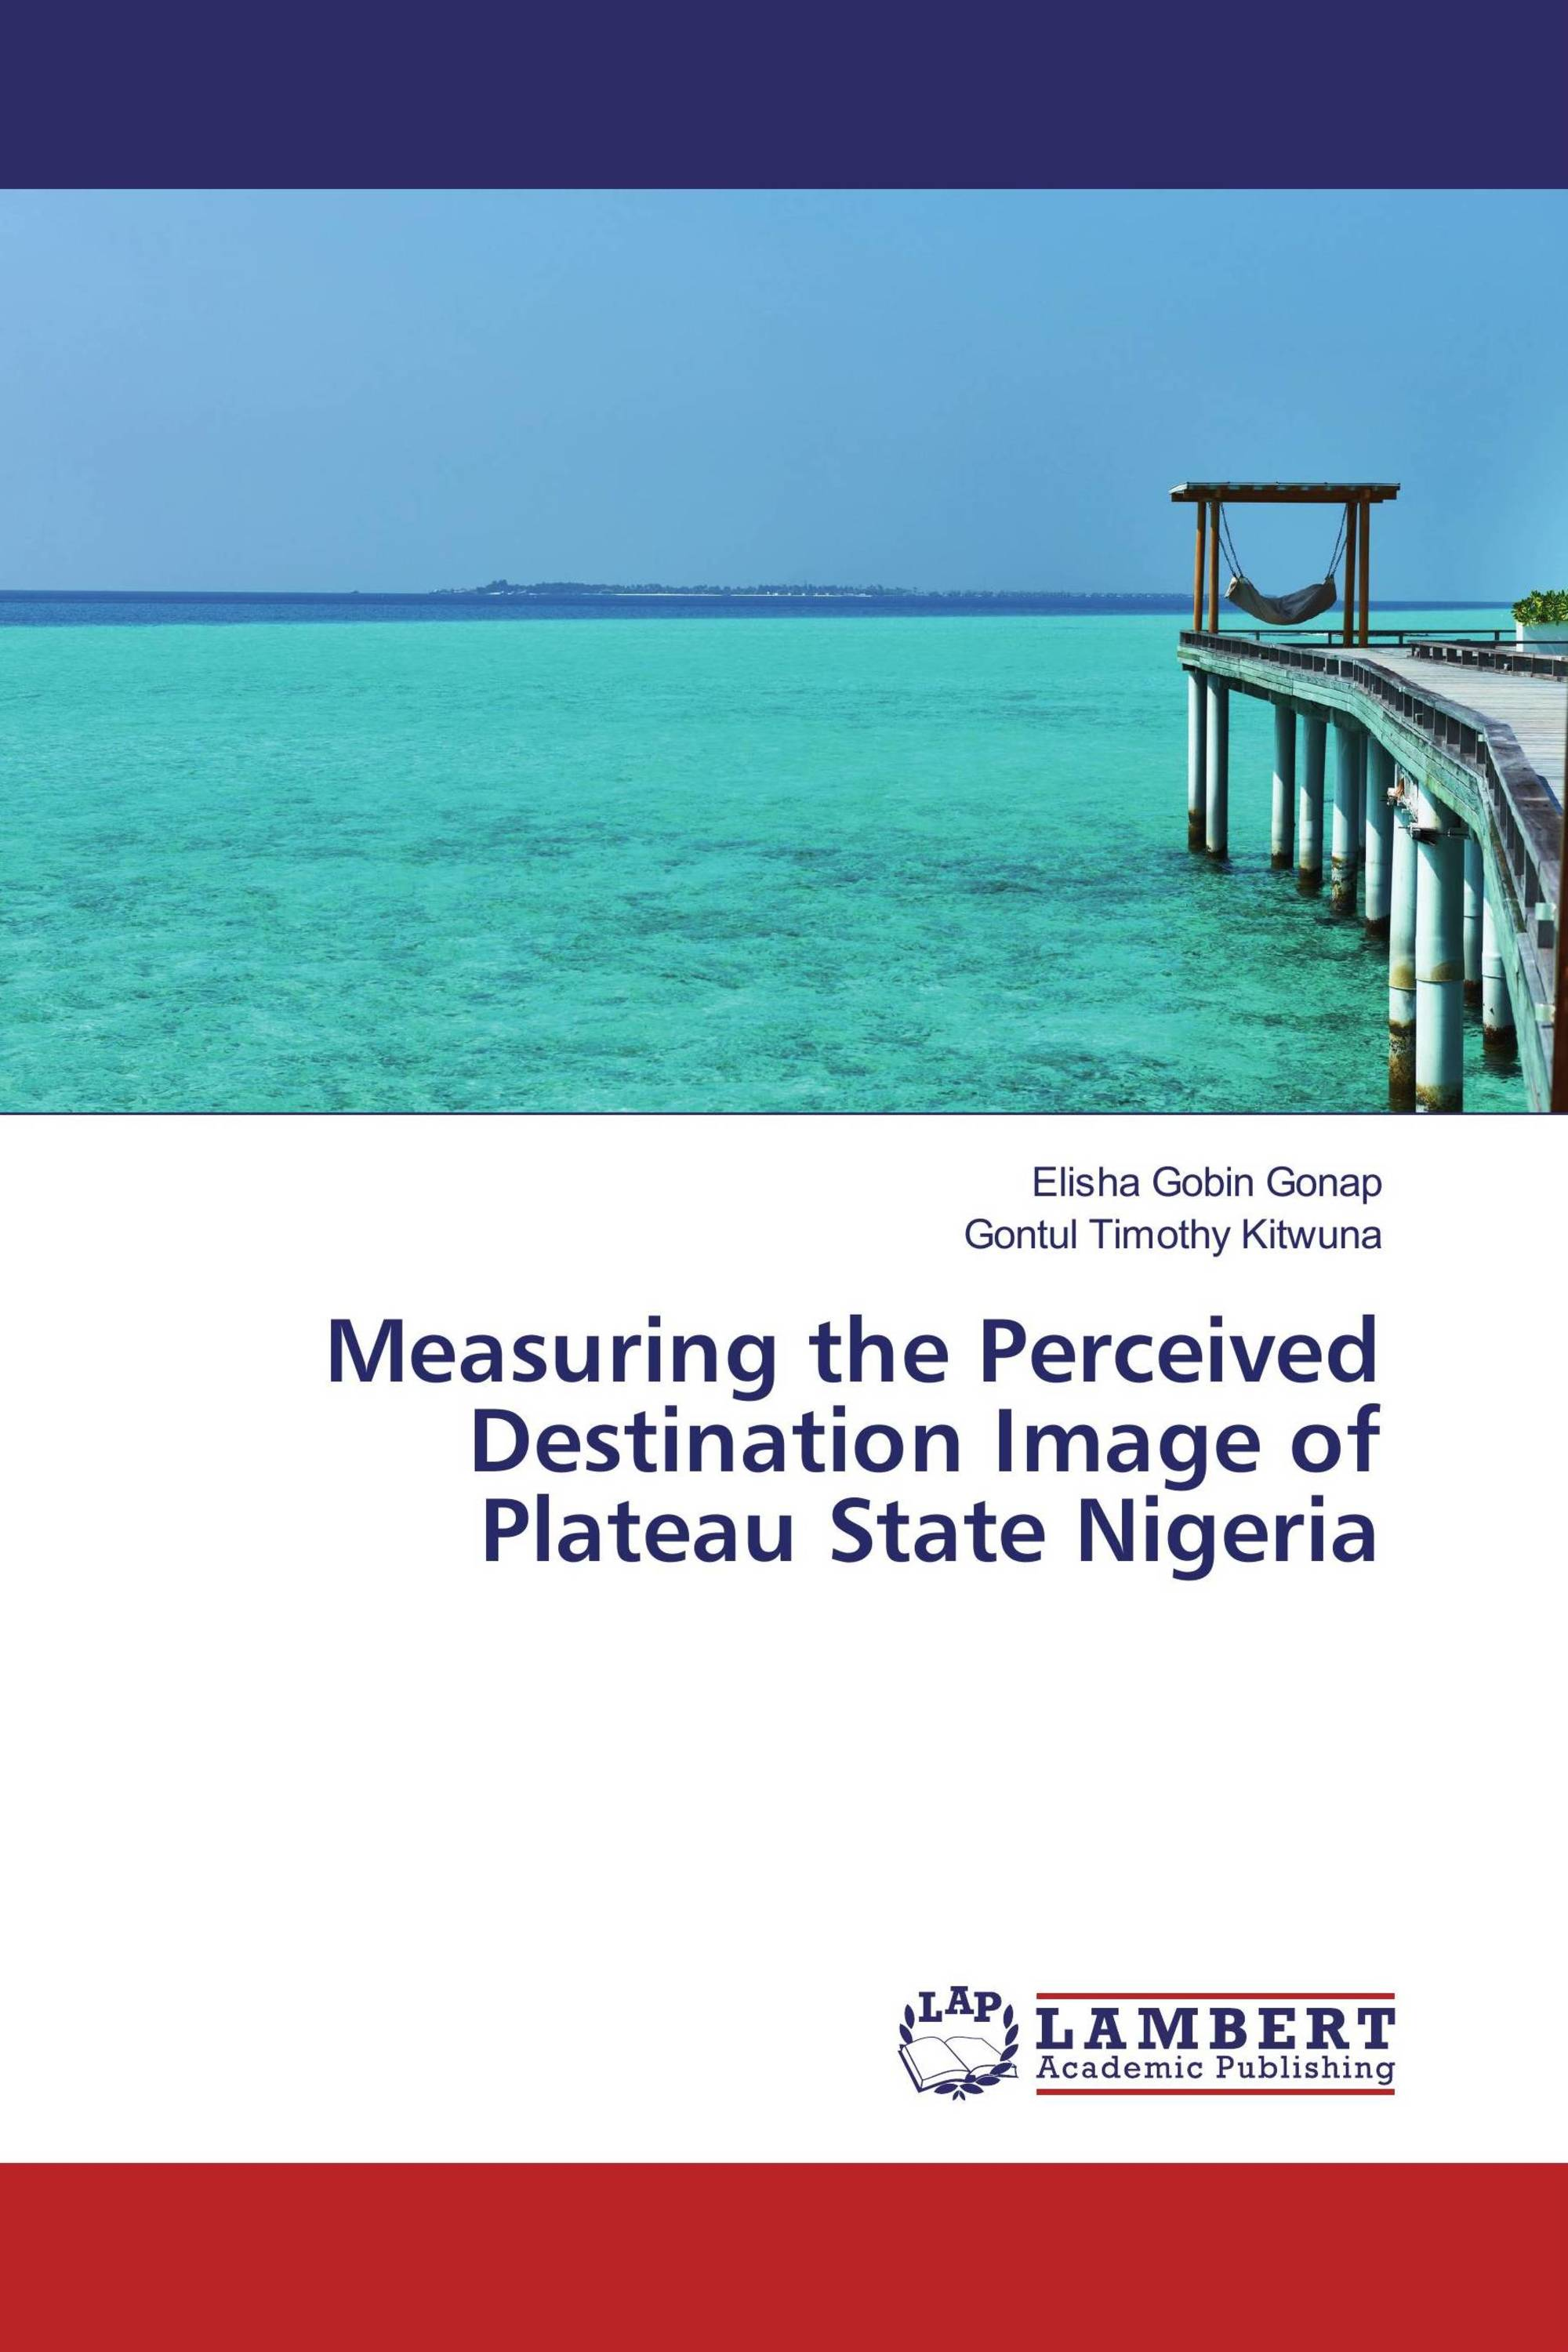 Measuring the Perceived Destination Image of Plateau State Nigeria